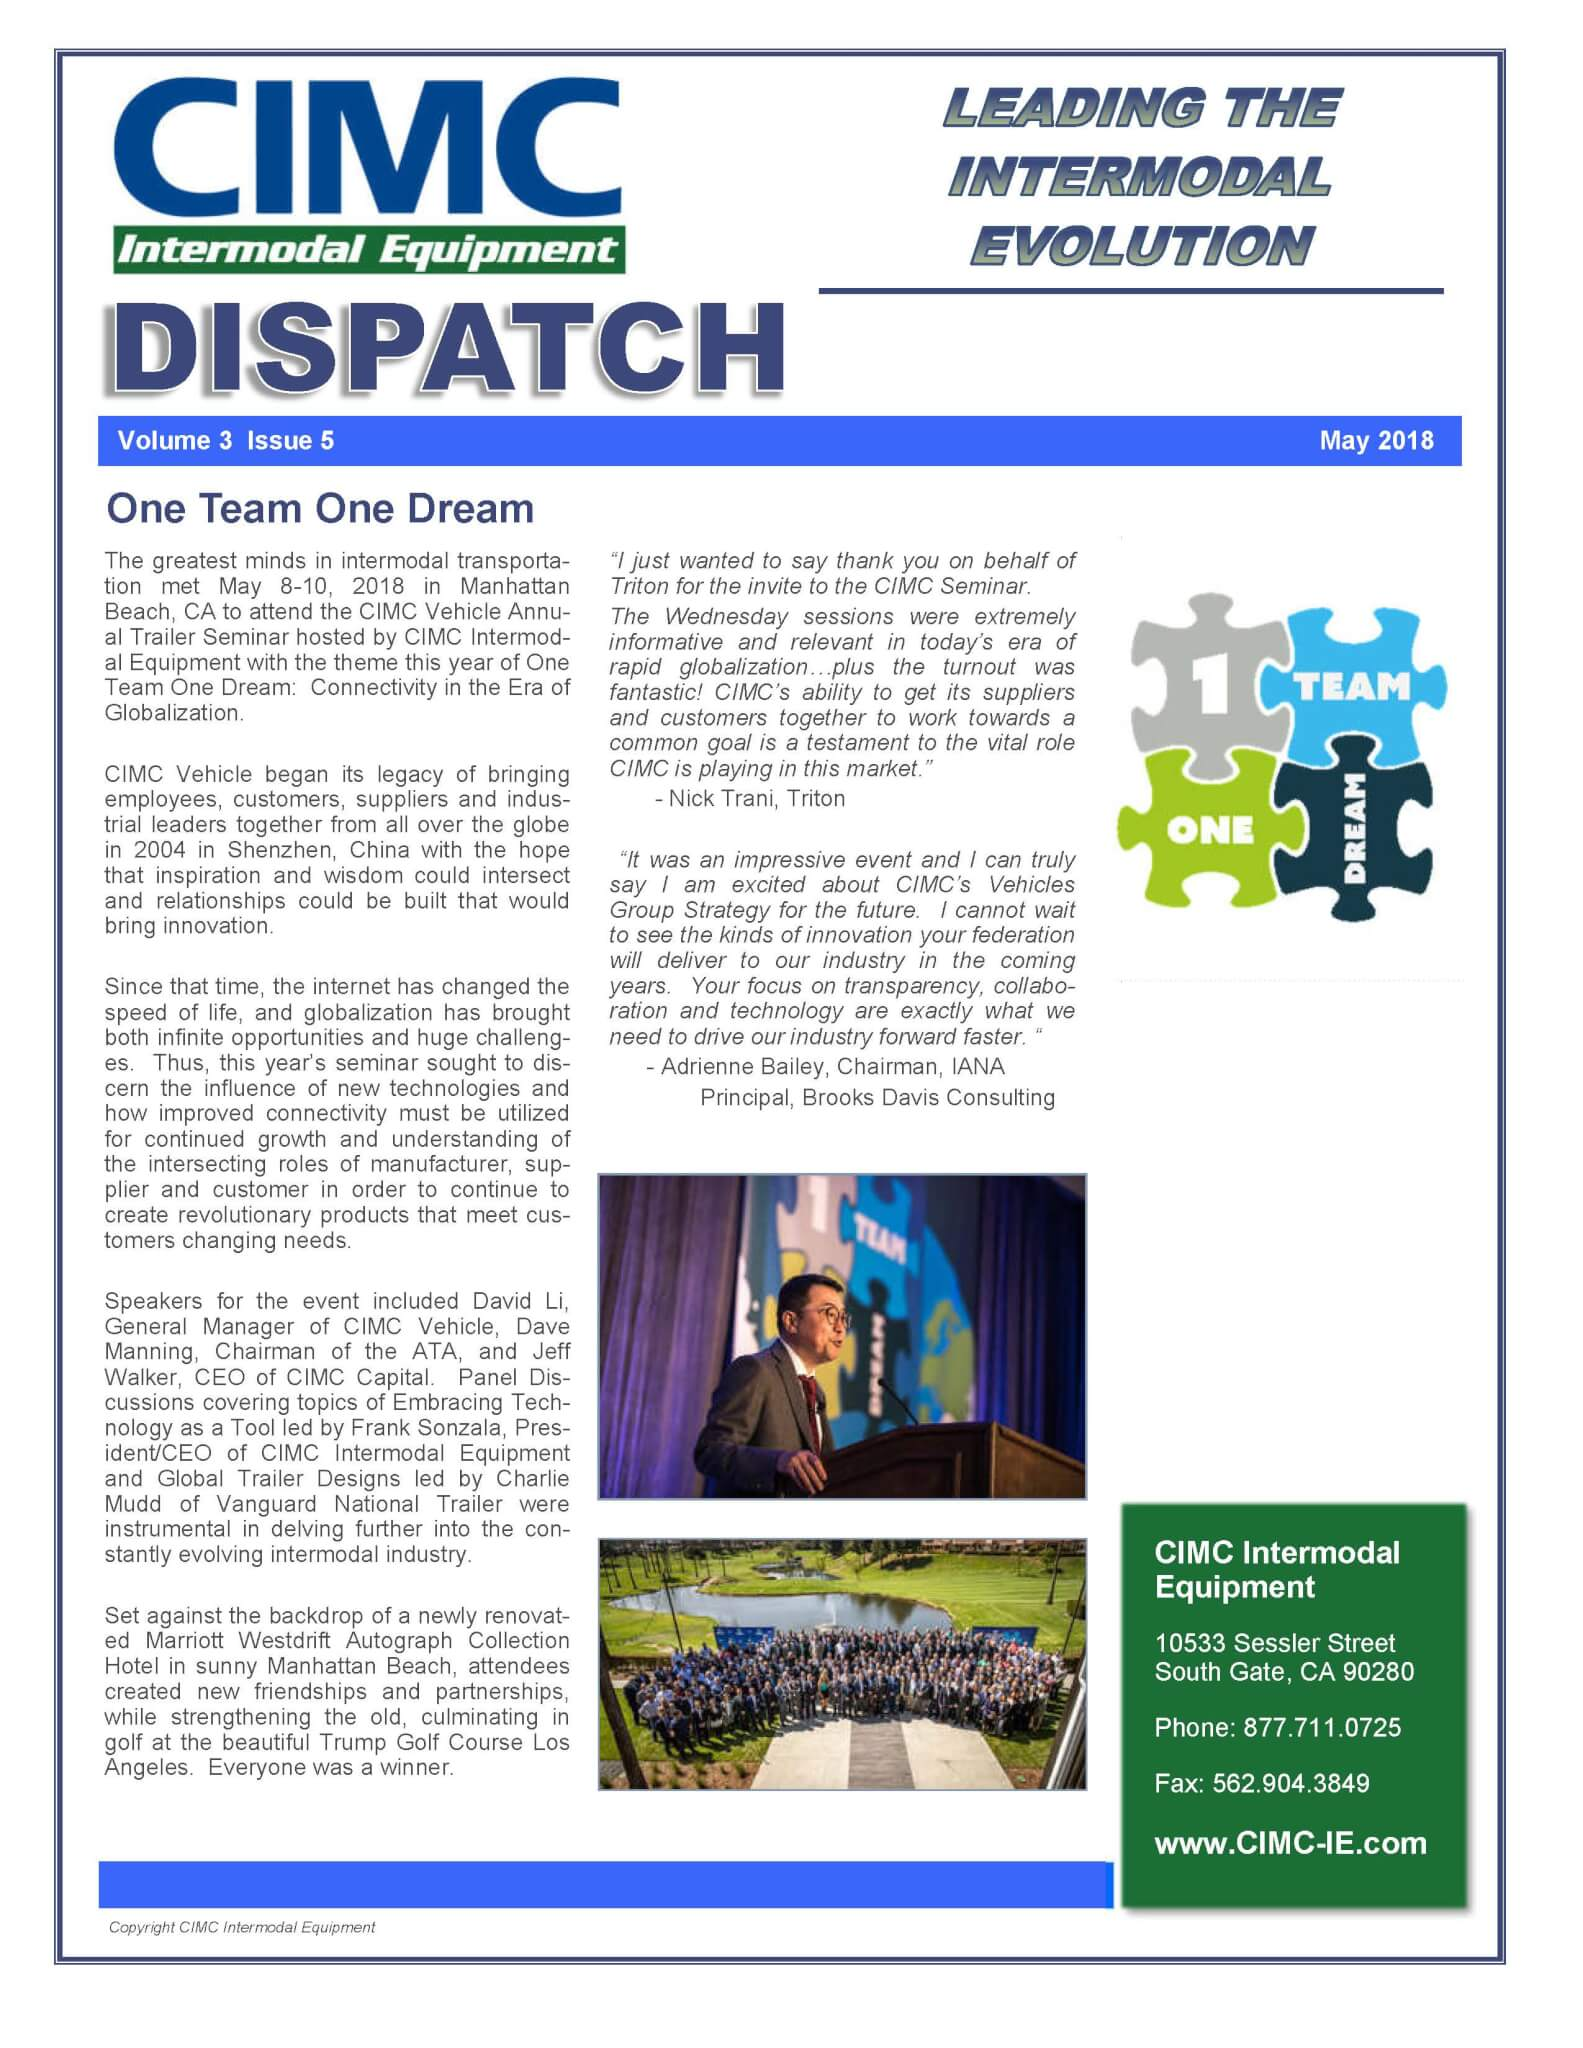 CIMC Dispatch May 2018